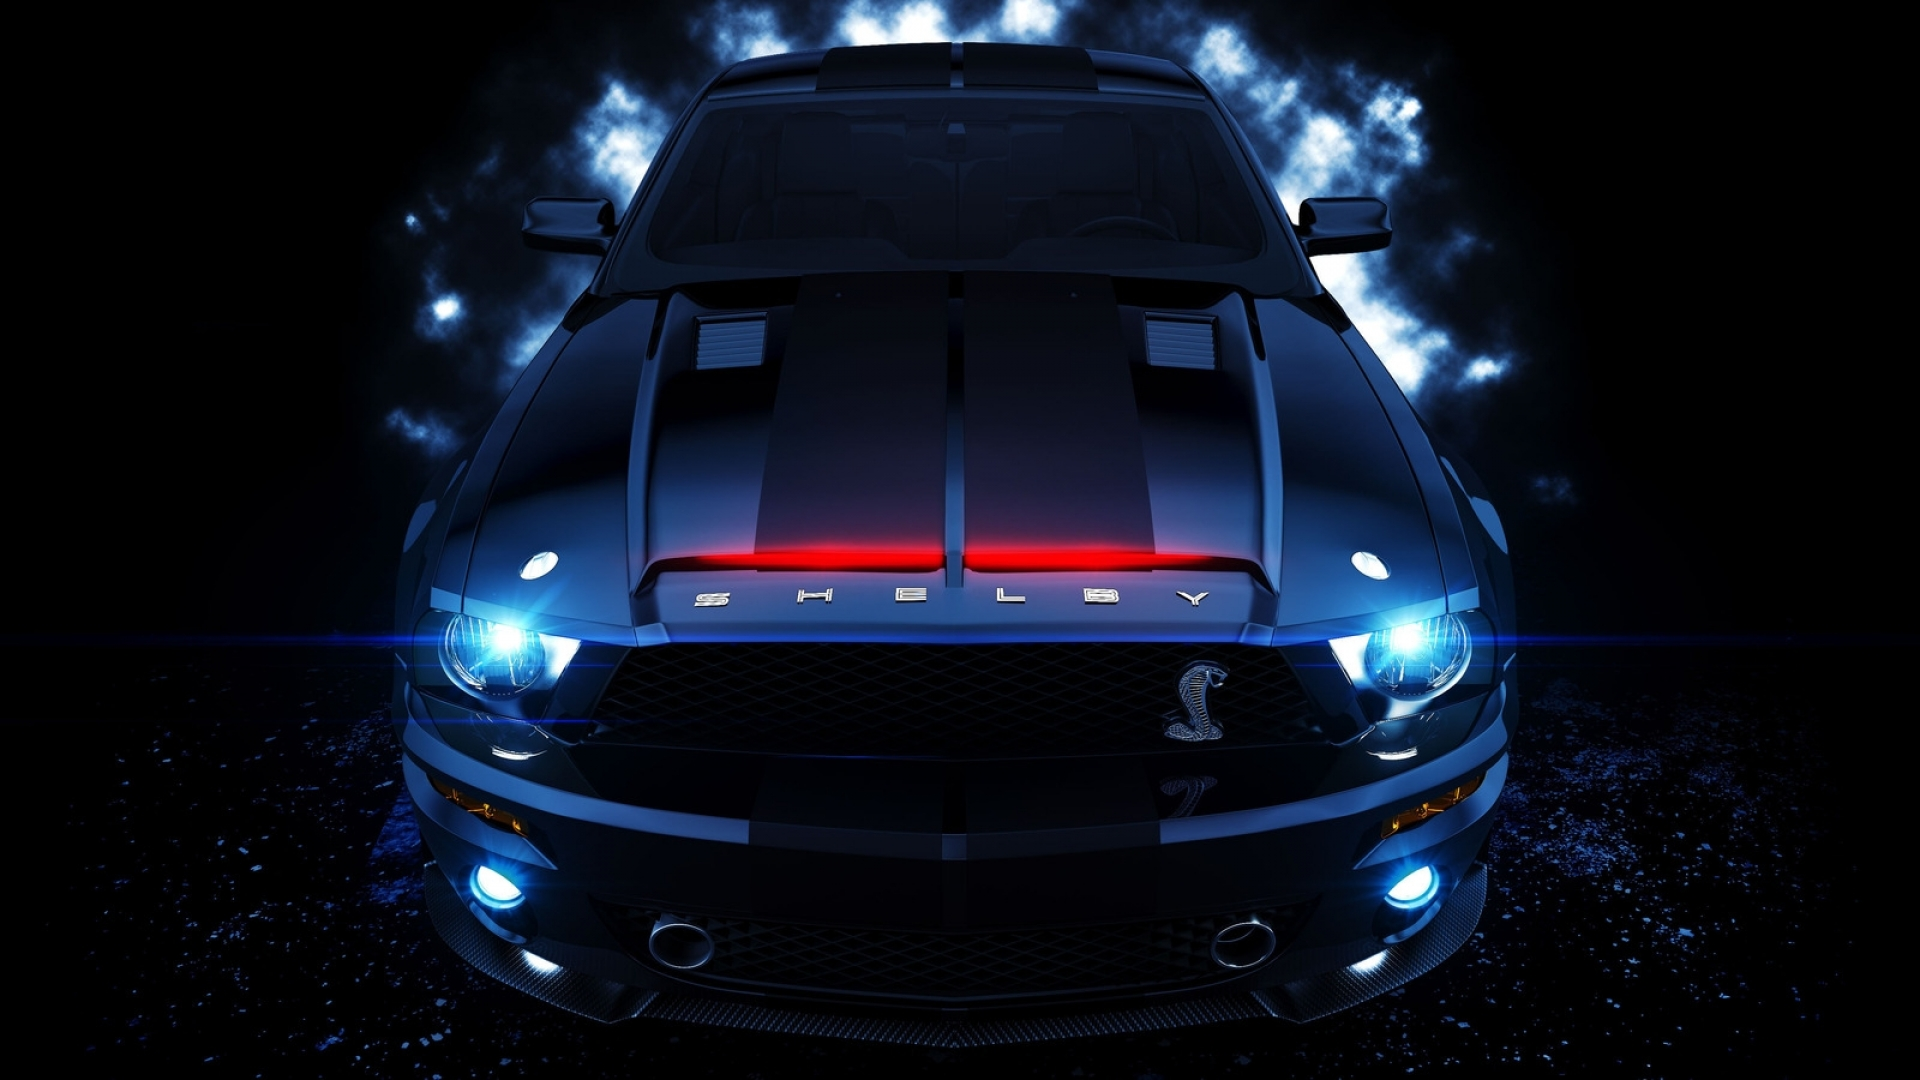 2017 Mustang Shelby Gt350 Black >> Ford Mustang Shelby GT500 Wallpapers, Pictures, Images